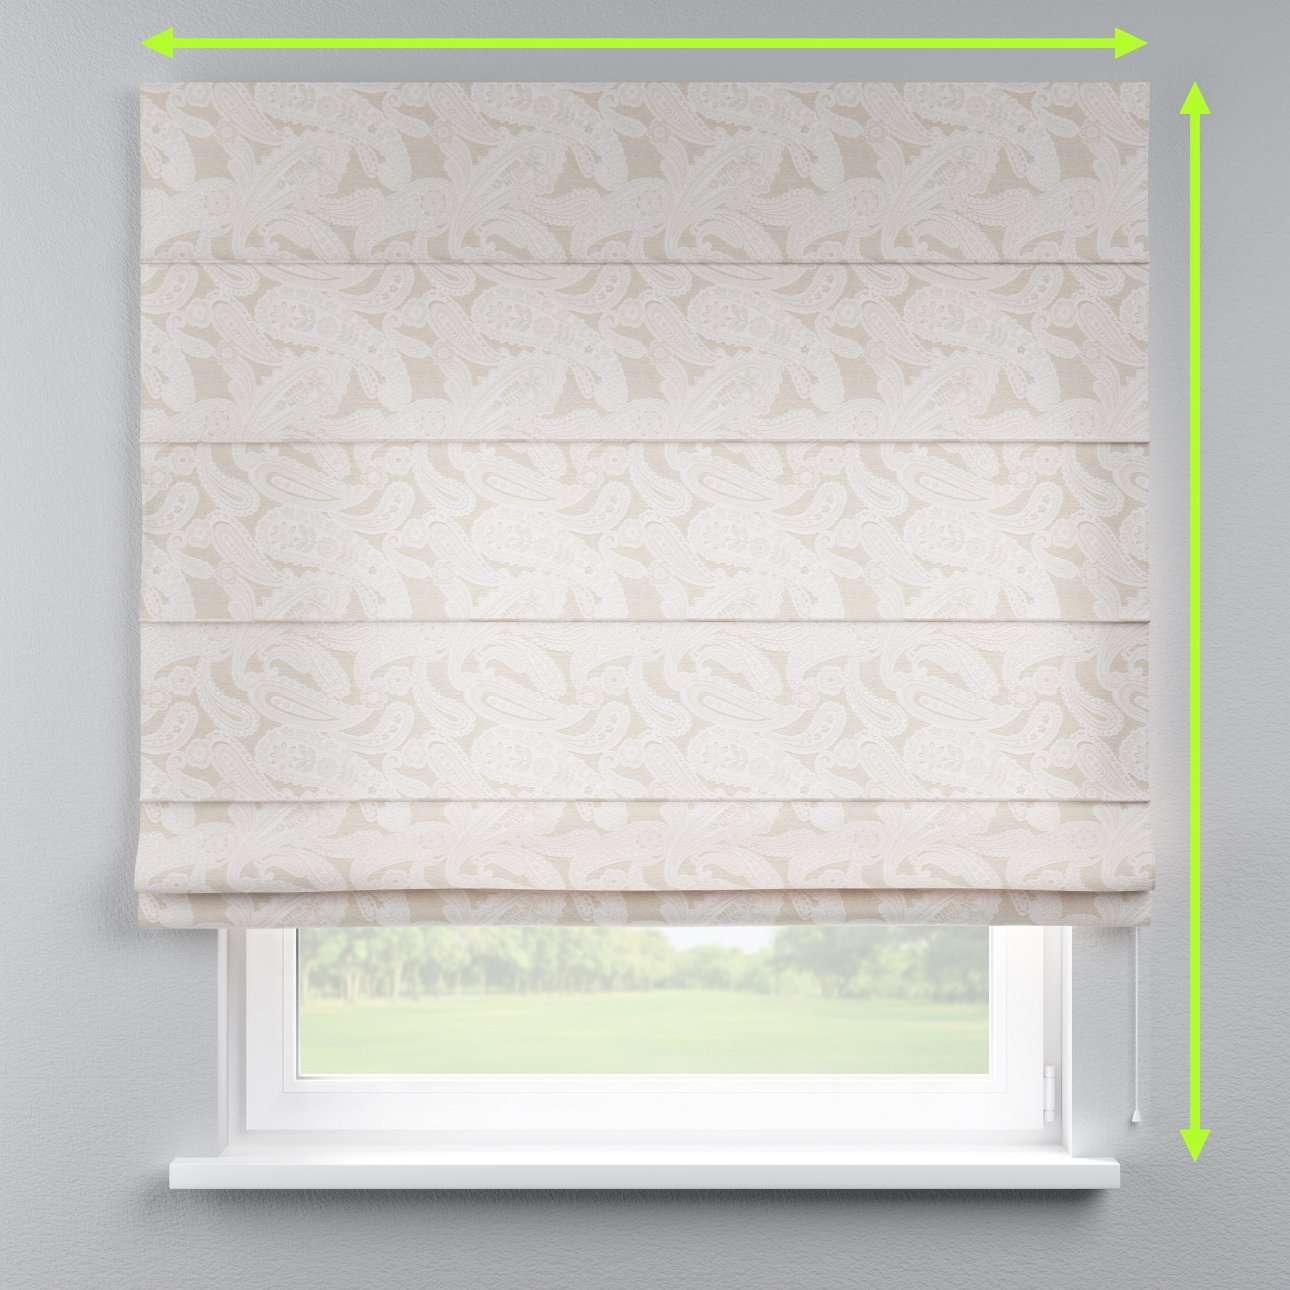 Capri roman blind in collection Rustica, fabric: 138-10